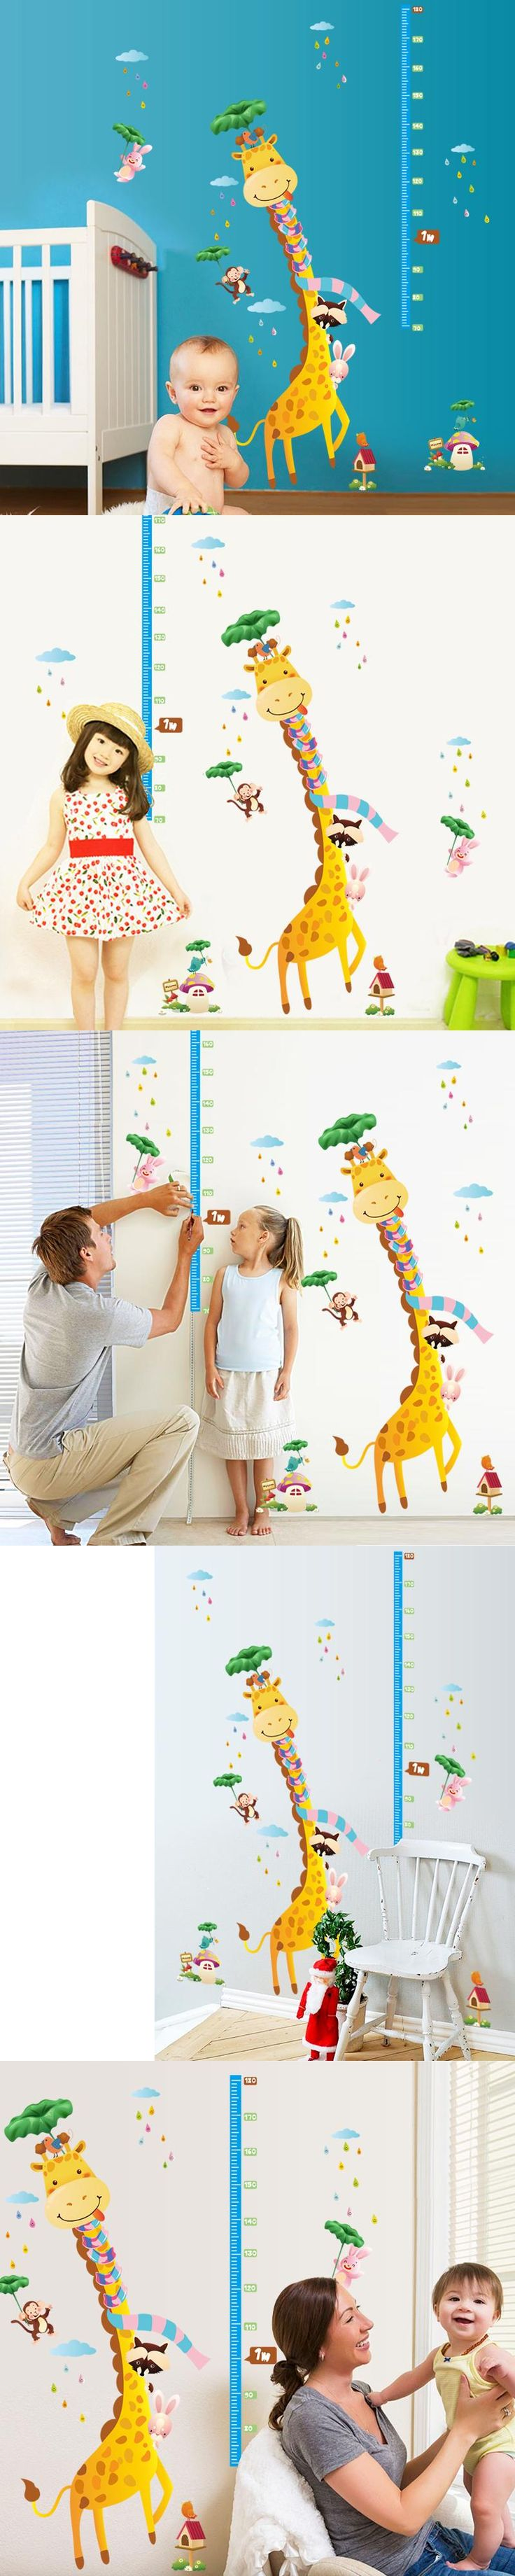 The 25 best giraffe height ideas on pinterest jungle nursery removable vinyl giraffe height chart wall decal colorful hot sells wall decals home decorations diy pvc amipublicfo Image collections